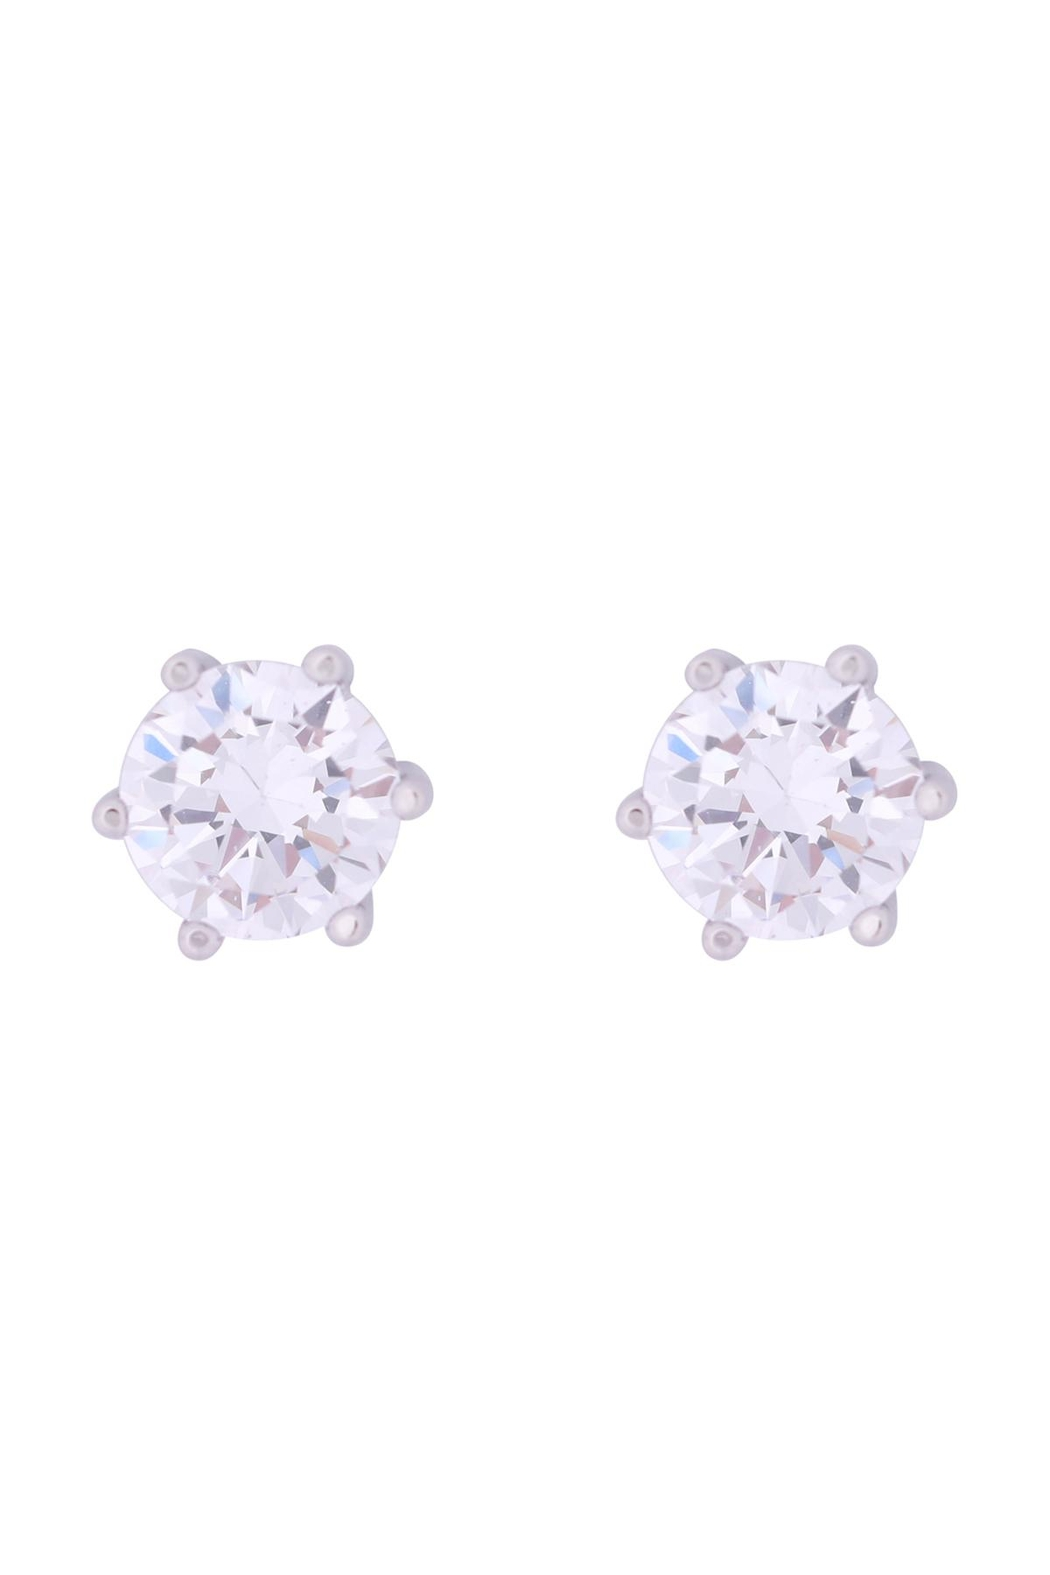 Riah Fashion Org-8mm-Round-Cubic-Zirconia-Stud-Earrings - Front Cropped Image